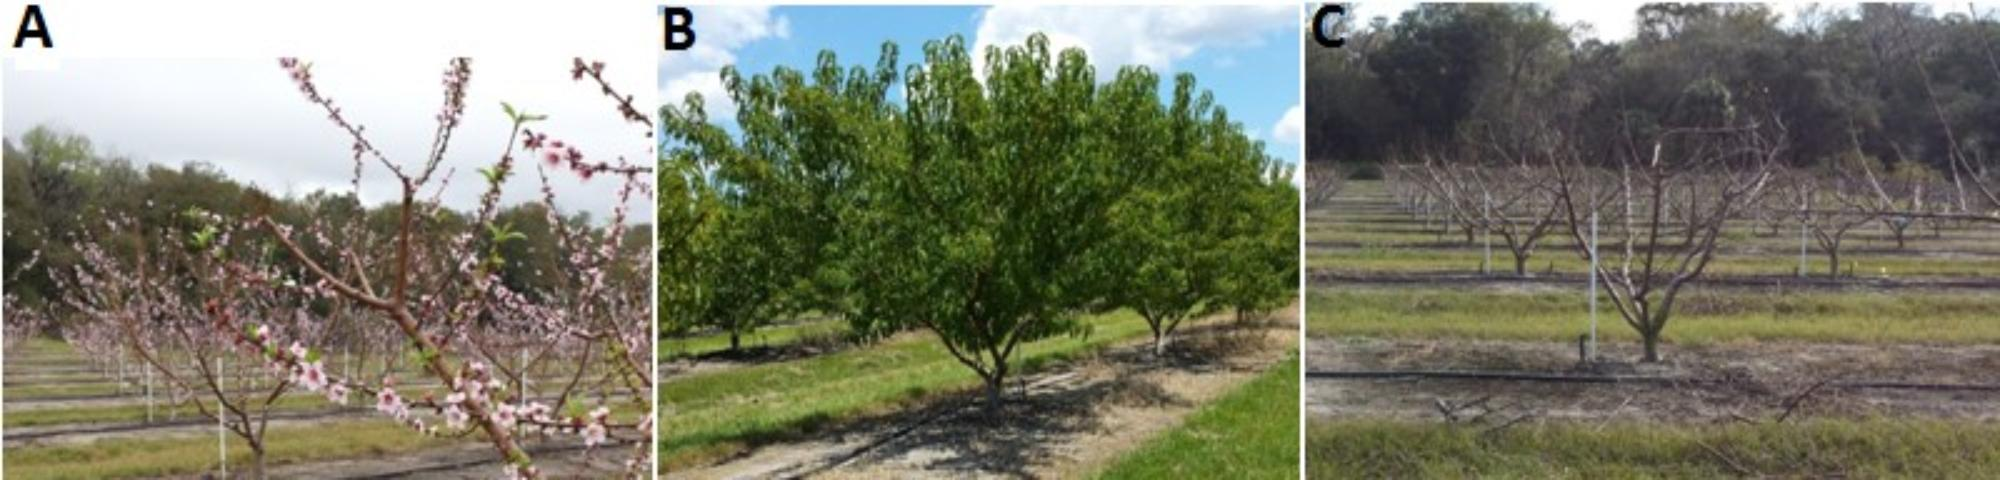 Figure 5.A) Peach trees flowering during spring; B) vegetative growth during late May‒November; C) dormant trees during mid-December to early January.